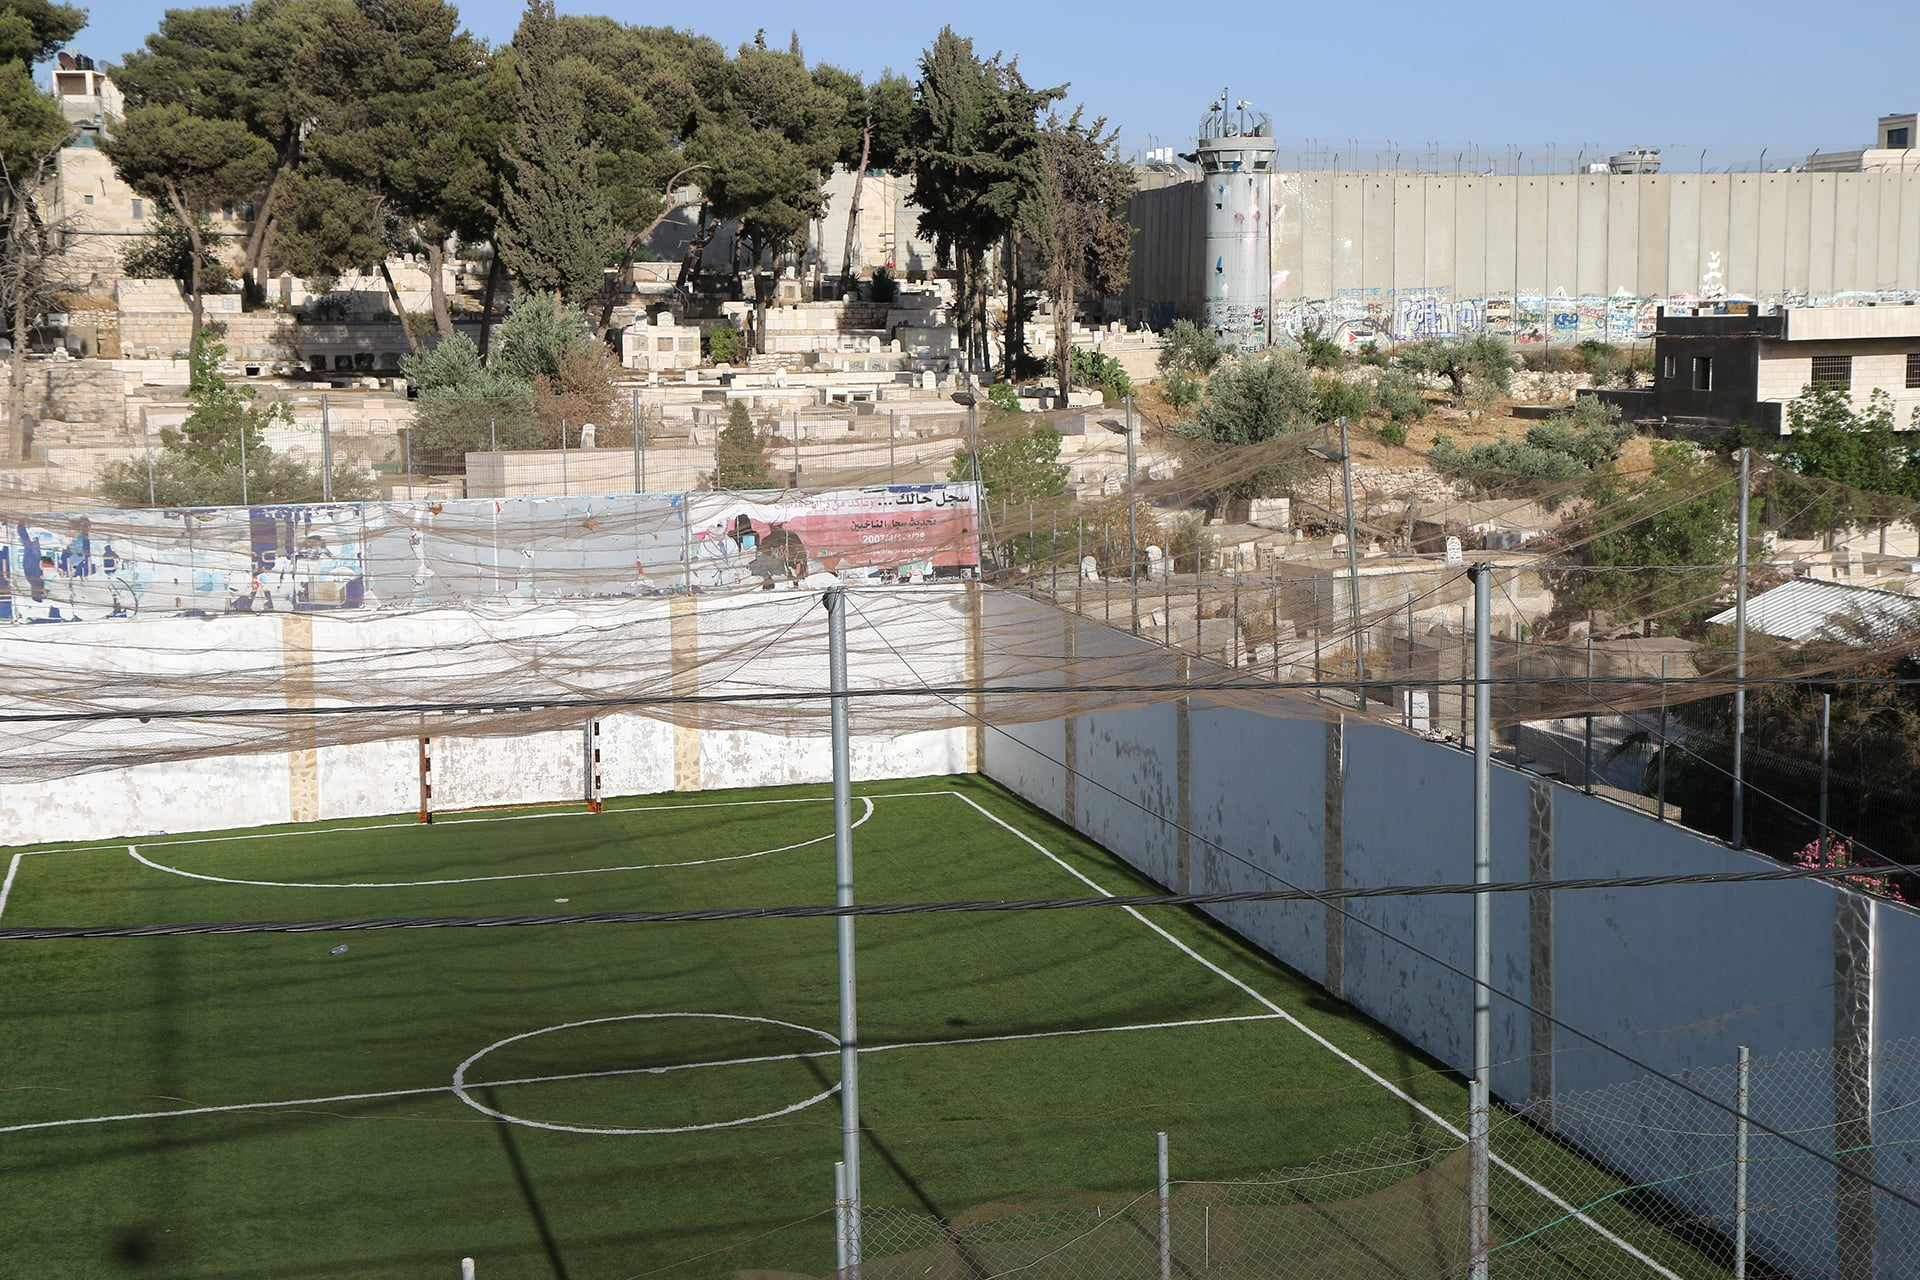 Lajee Center's soccer field and recreation area directly adjacent to the concrete barrier and Israeli military base next to Rachel's Tomb. (Photo: DCIP / Ahmad Al-Bazz)